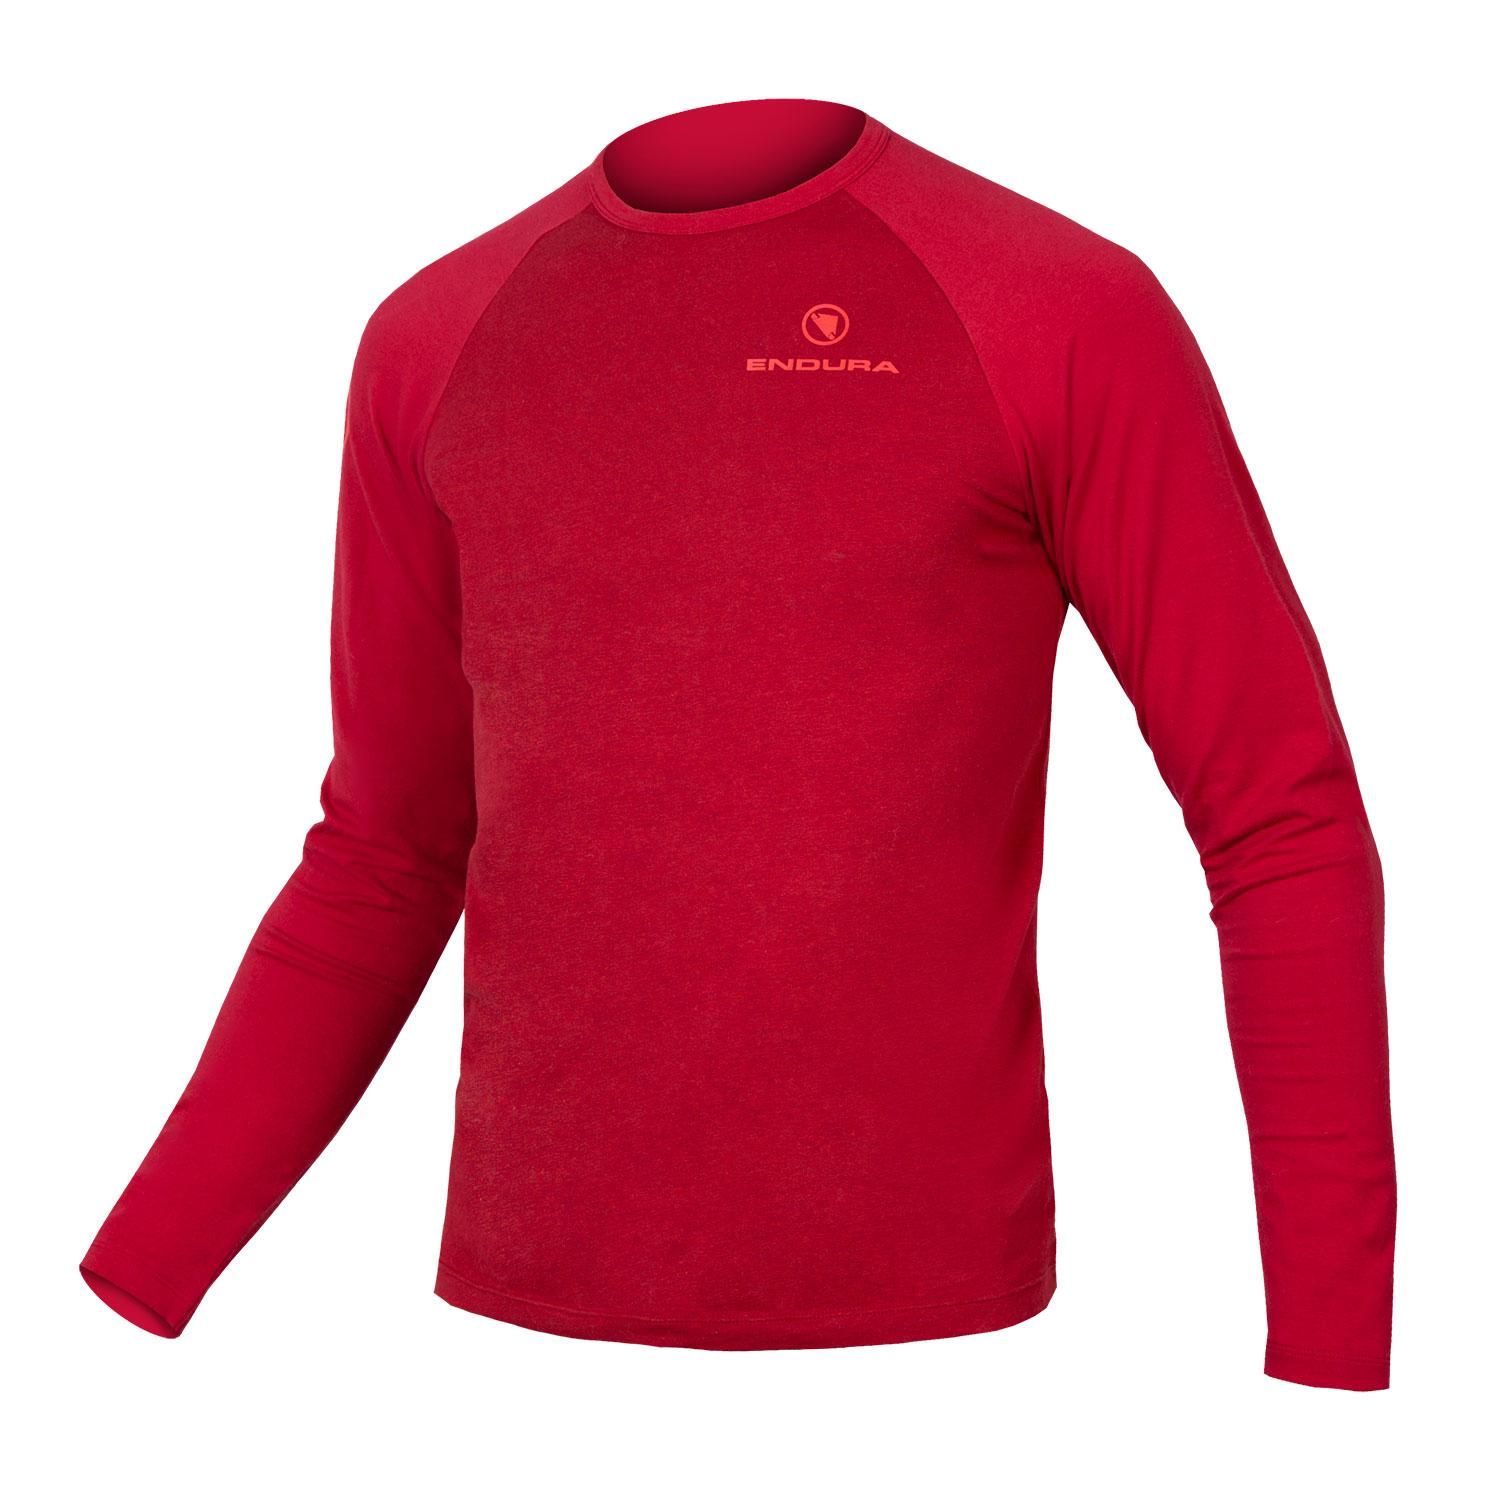 Endura Casual Fietskleding Heren Rood - One Clan Raglan L/S Roest Rood